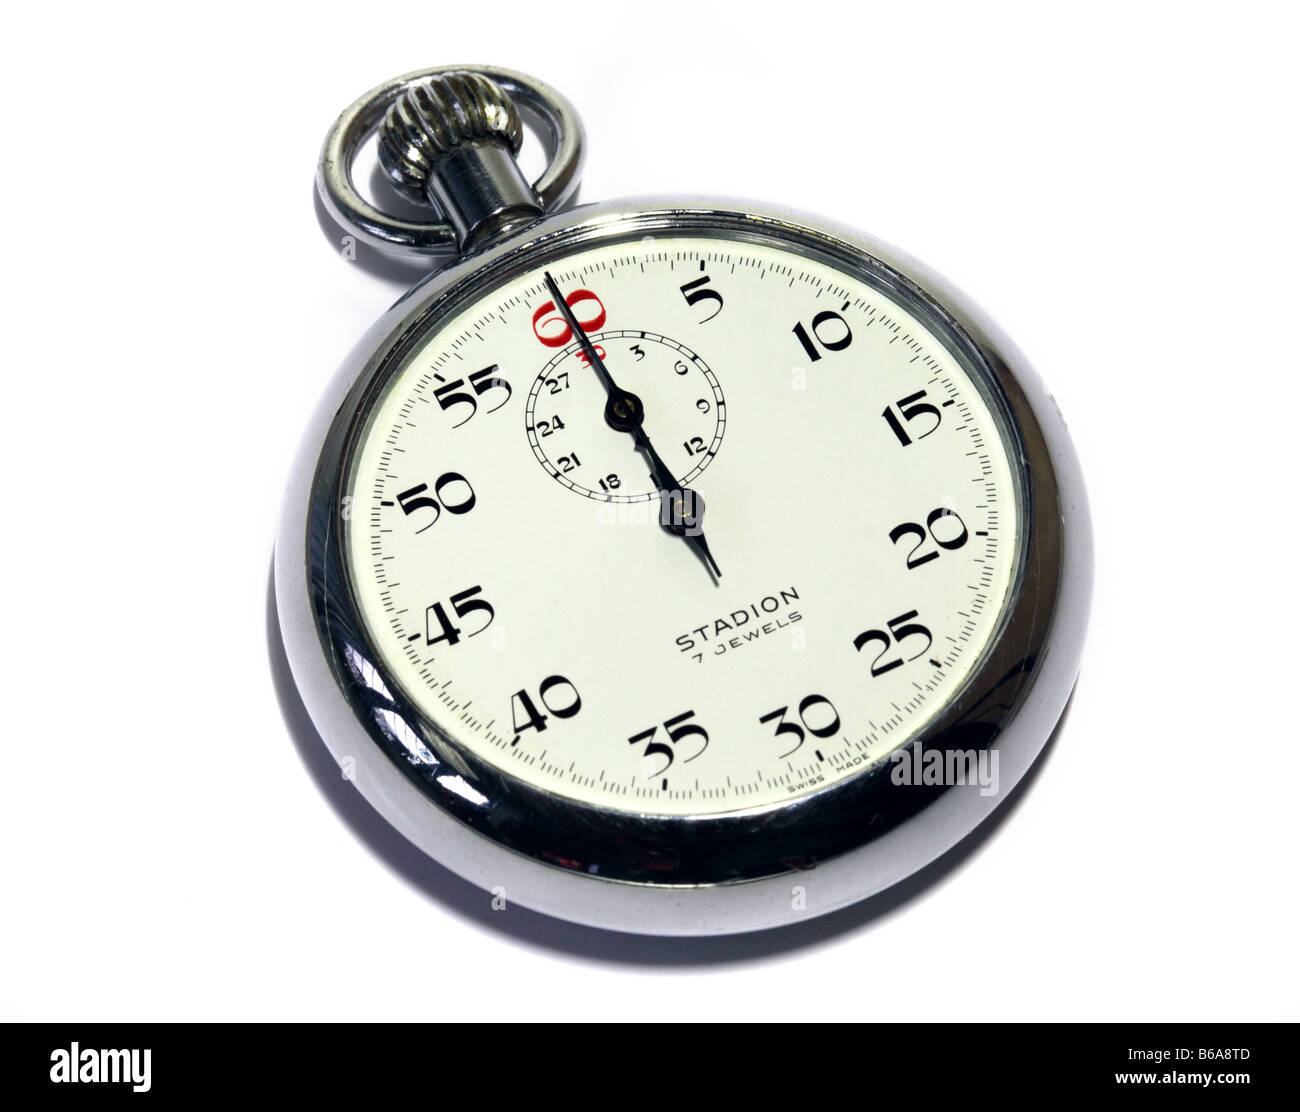 Old Fashioned Stadion Stopwatch - Stock Image